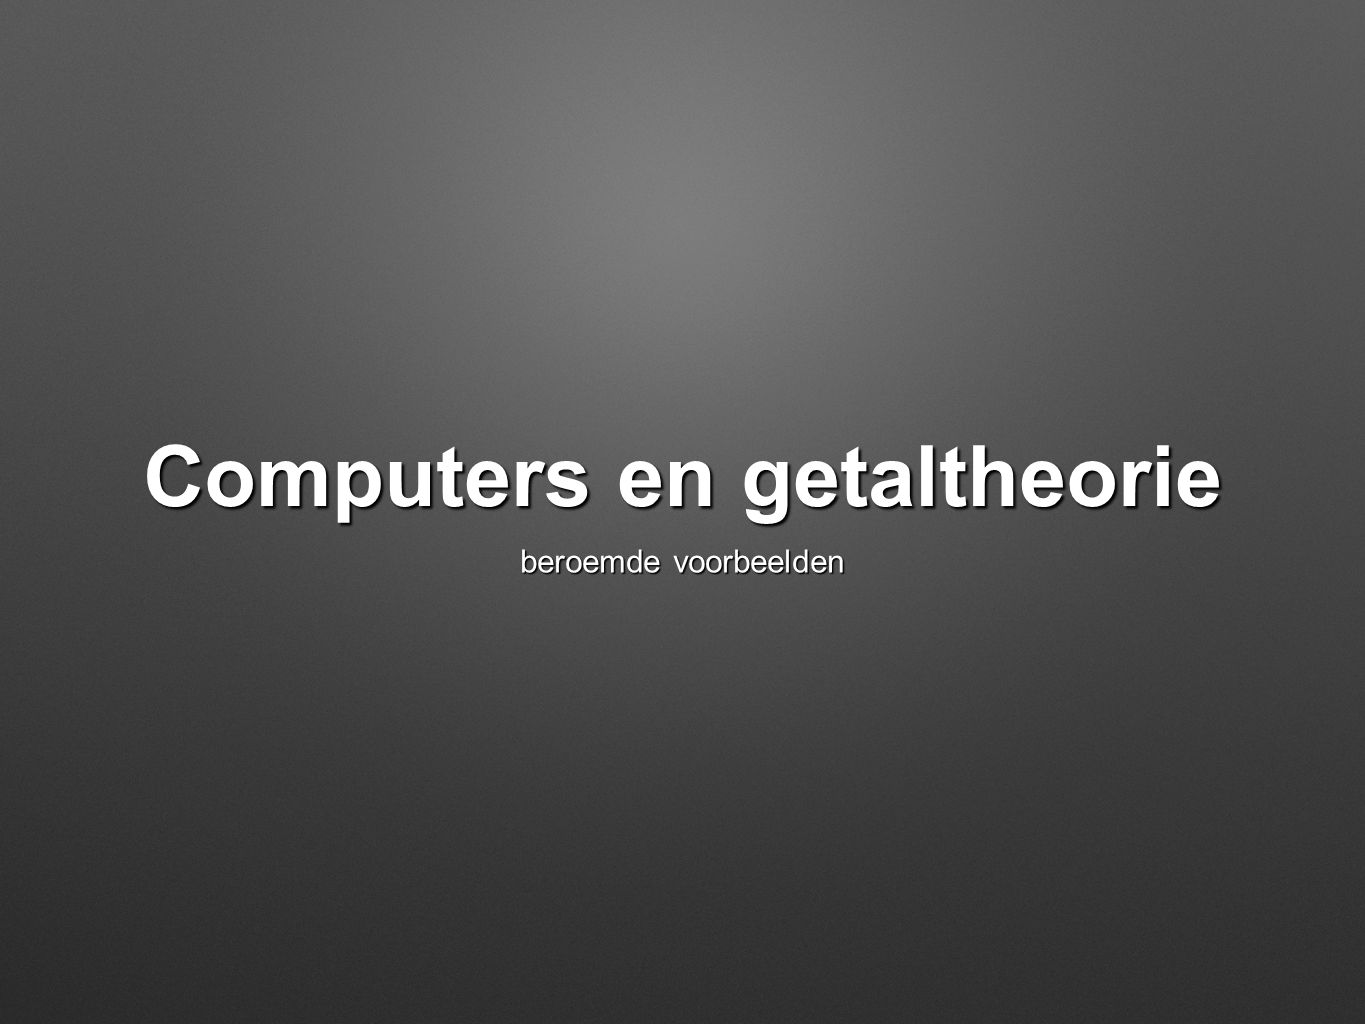 Computers en getaltheorie